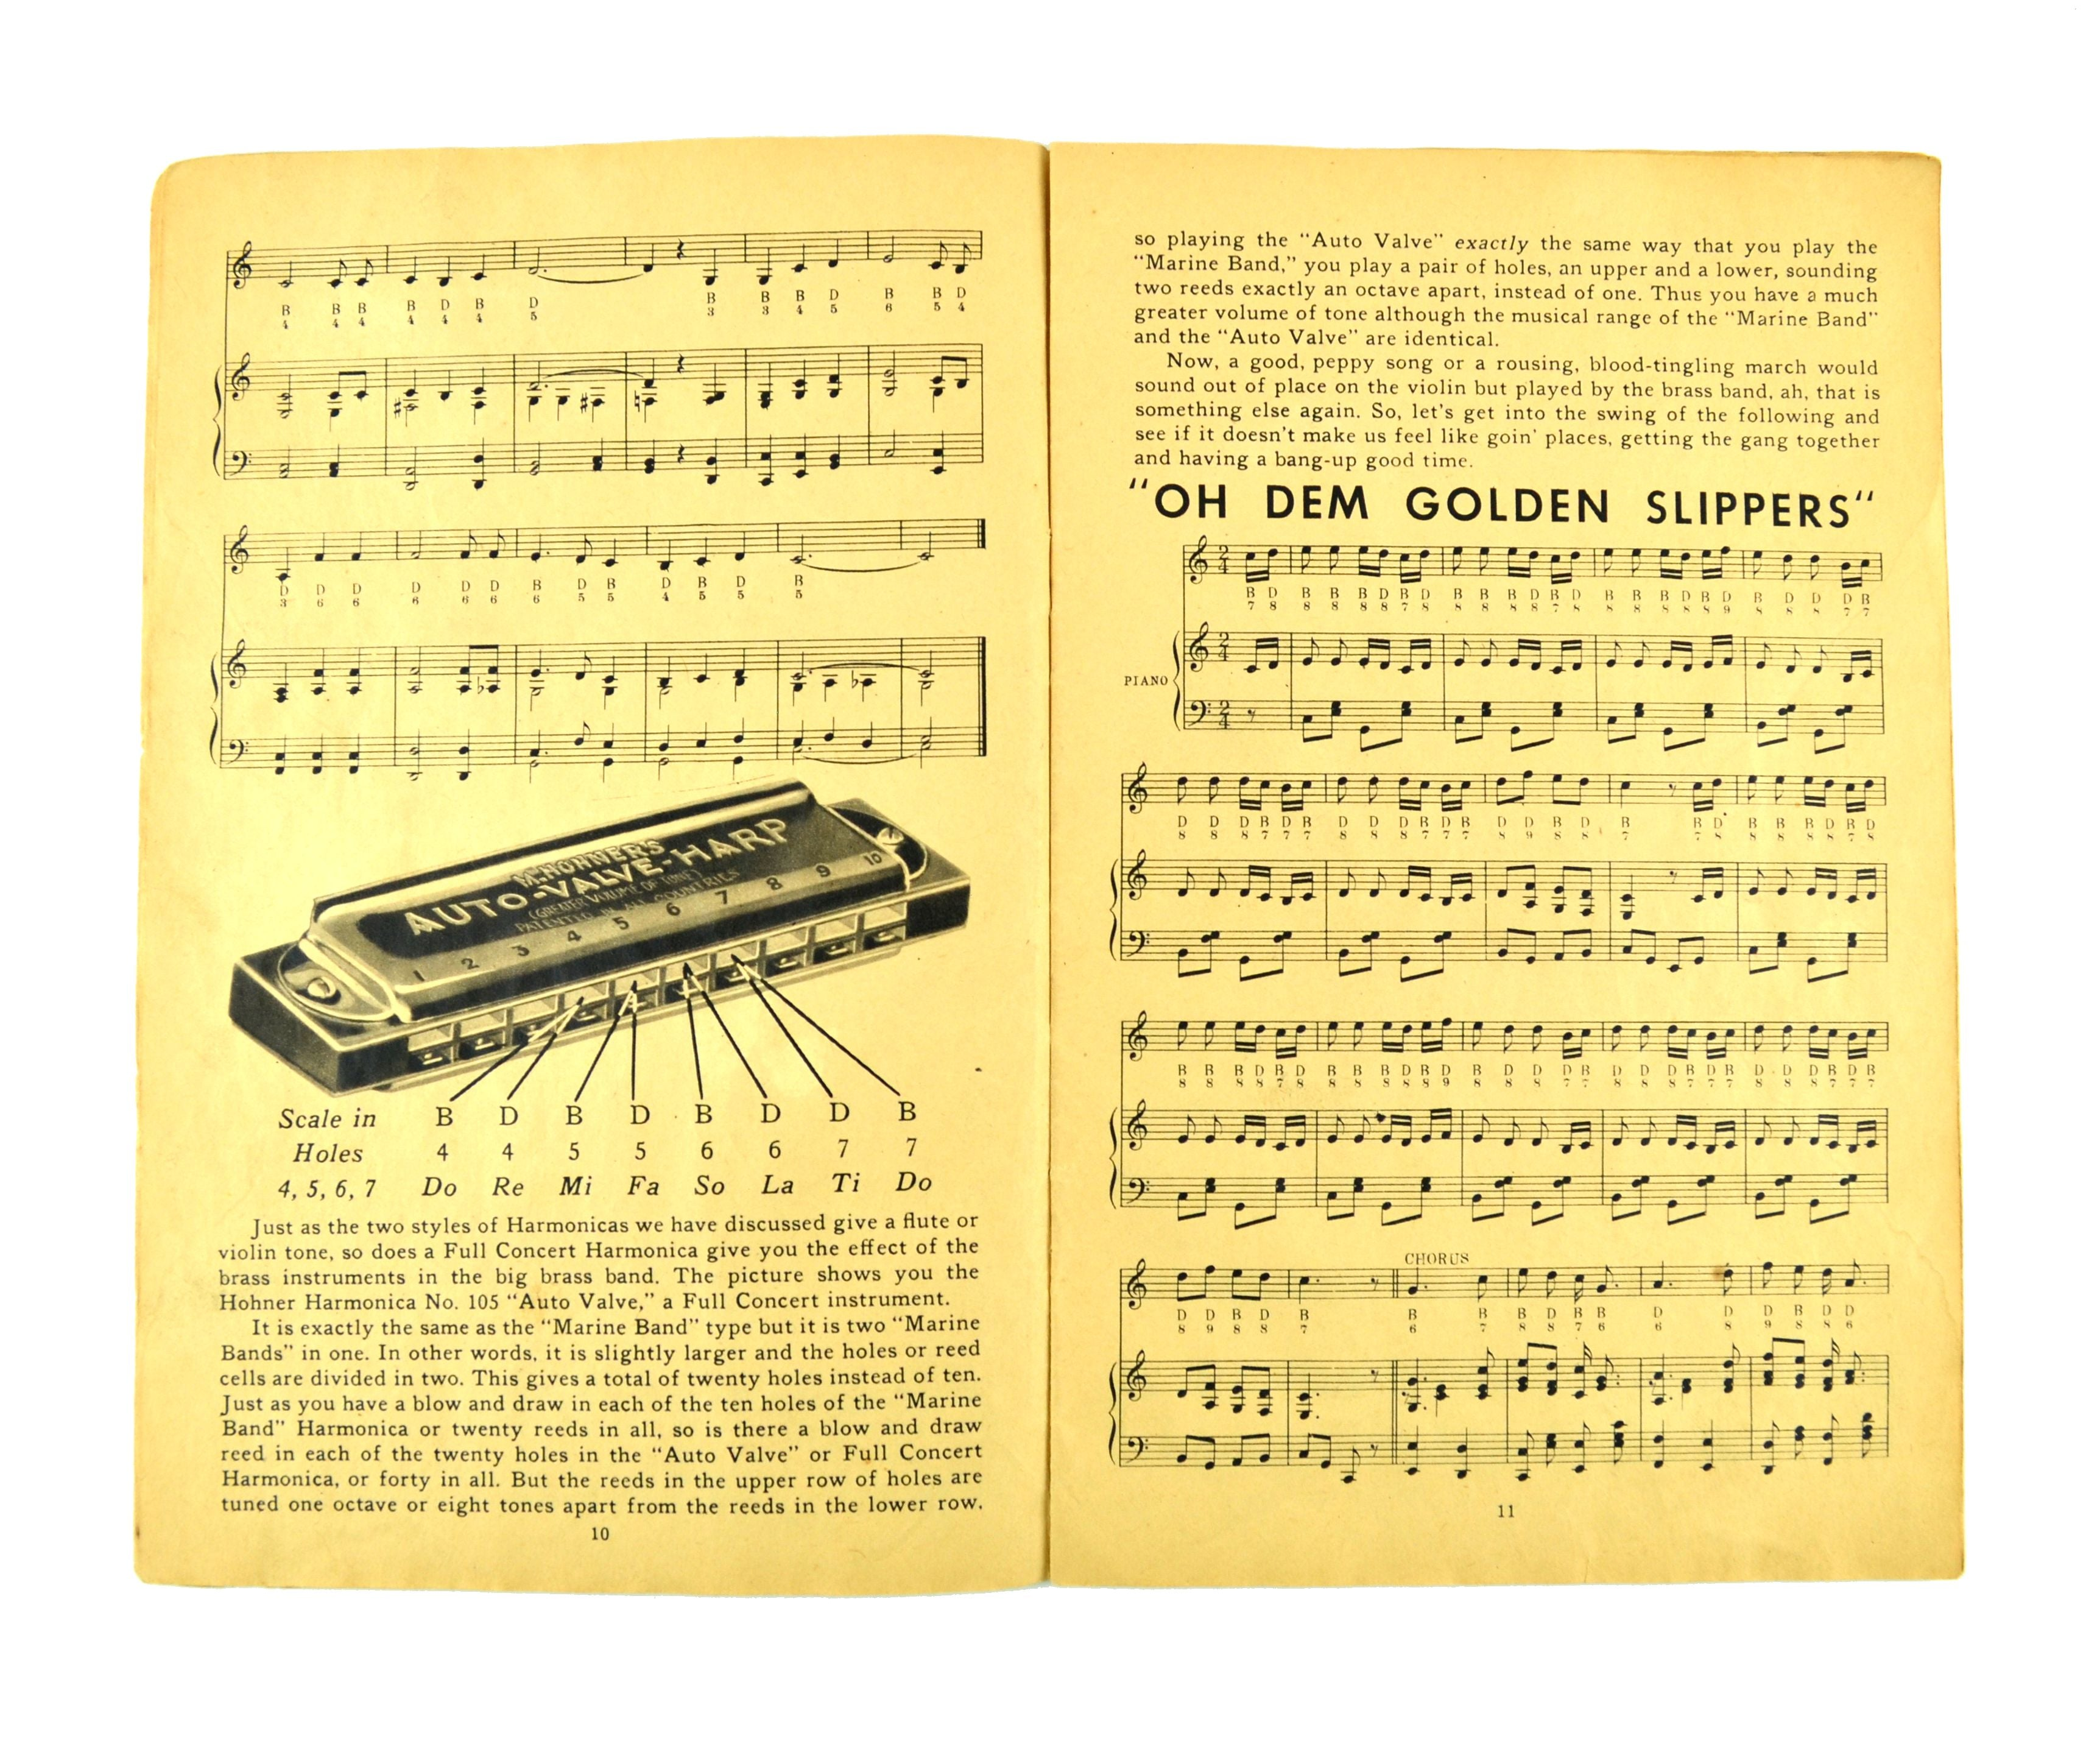 Harmonica Playing Made Easy 1937 Hohner Song Instruction Book